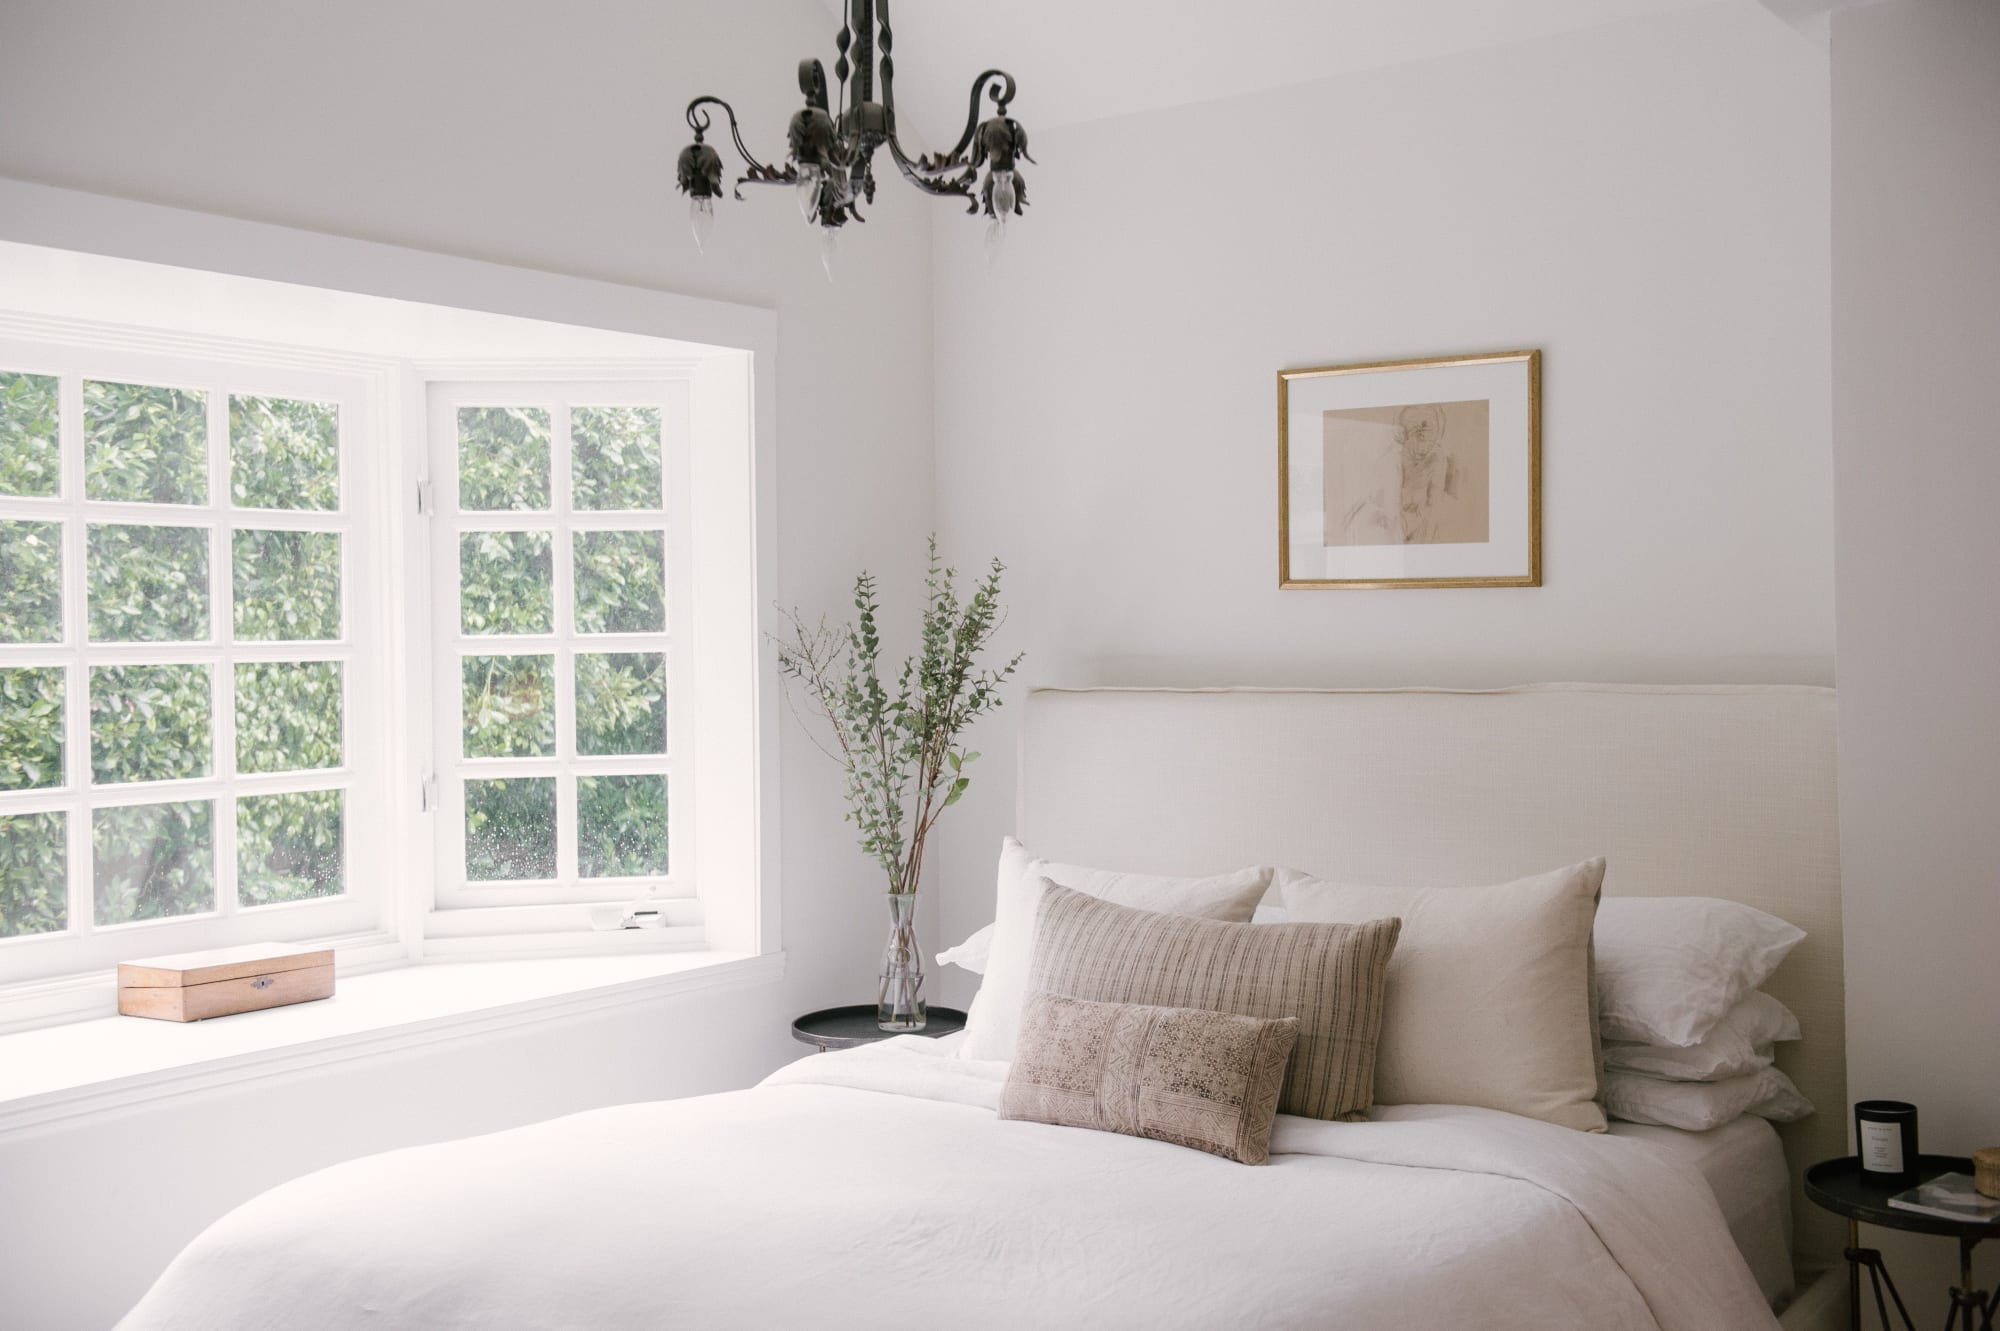 White and gray interior bedroom, light bed, pillows